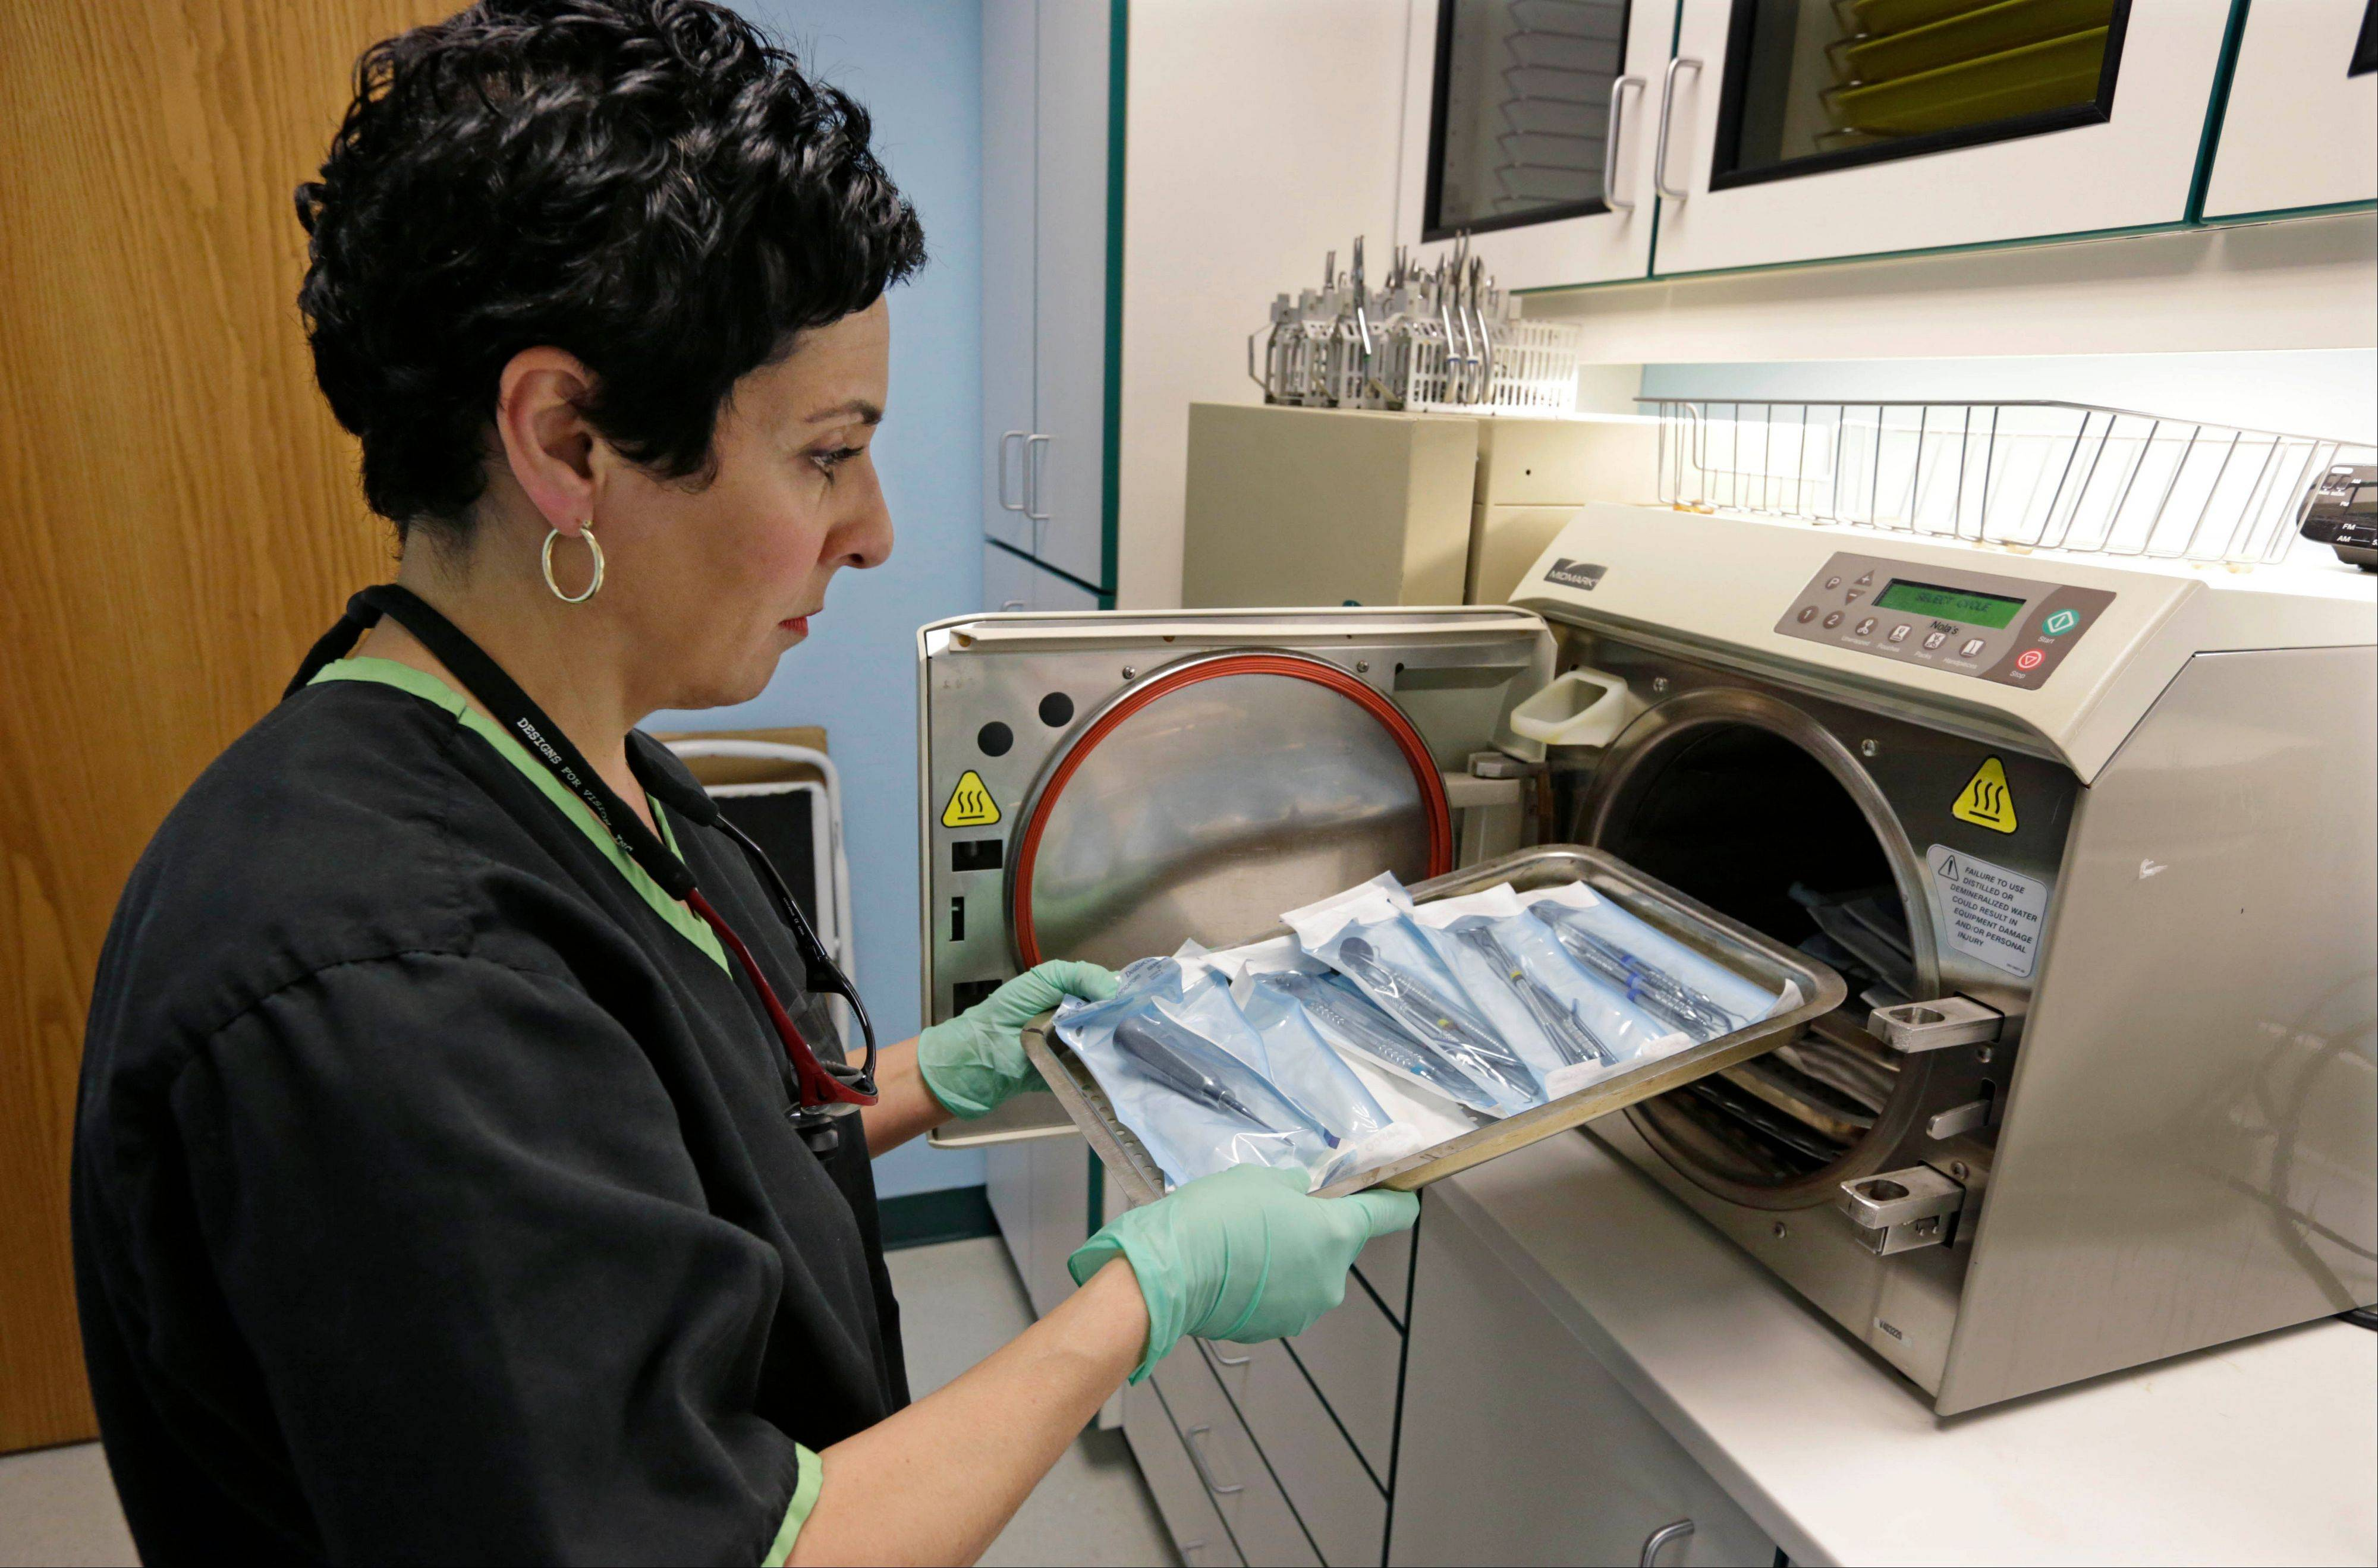 Dentist Alice G. Boghosian removes packages of properly sterilized dental instruments from an autoclave Friday that uses heat and steam to sterilize the tools, in Chicago. Health officials in Oklahoma are calling an oral surgeon there who used dirty equipment and risked cross-contamination a �menace to public health� and are urging thousands of his patients to seek medical screenings for hepatitis B, hepatitis C and HIV.